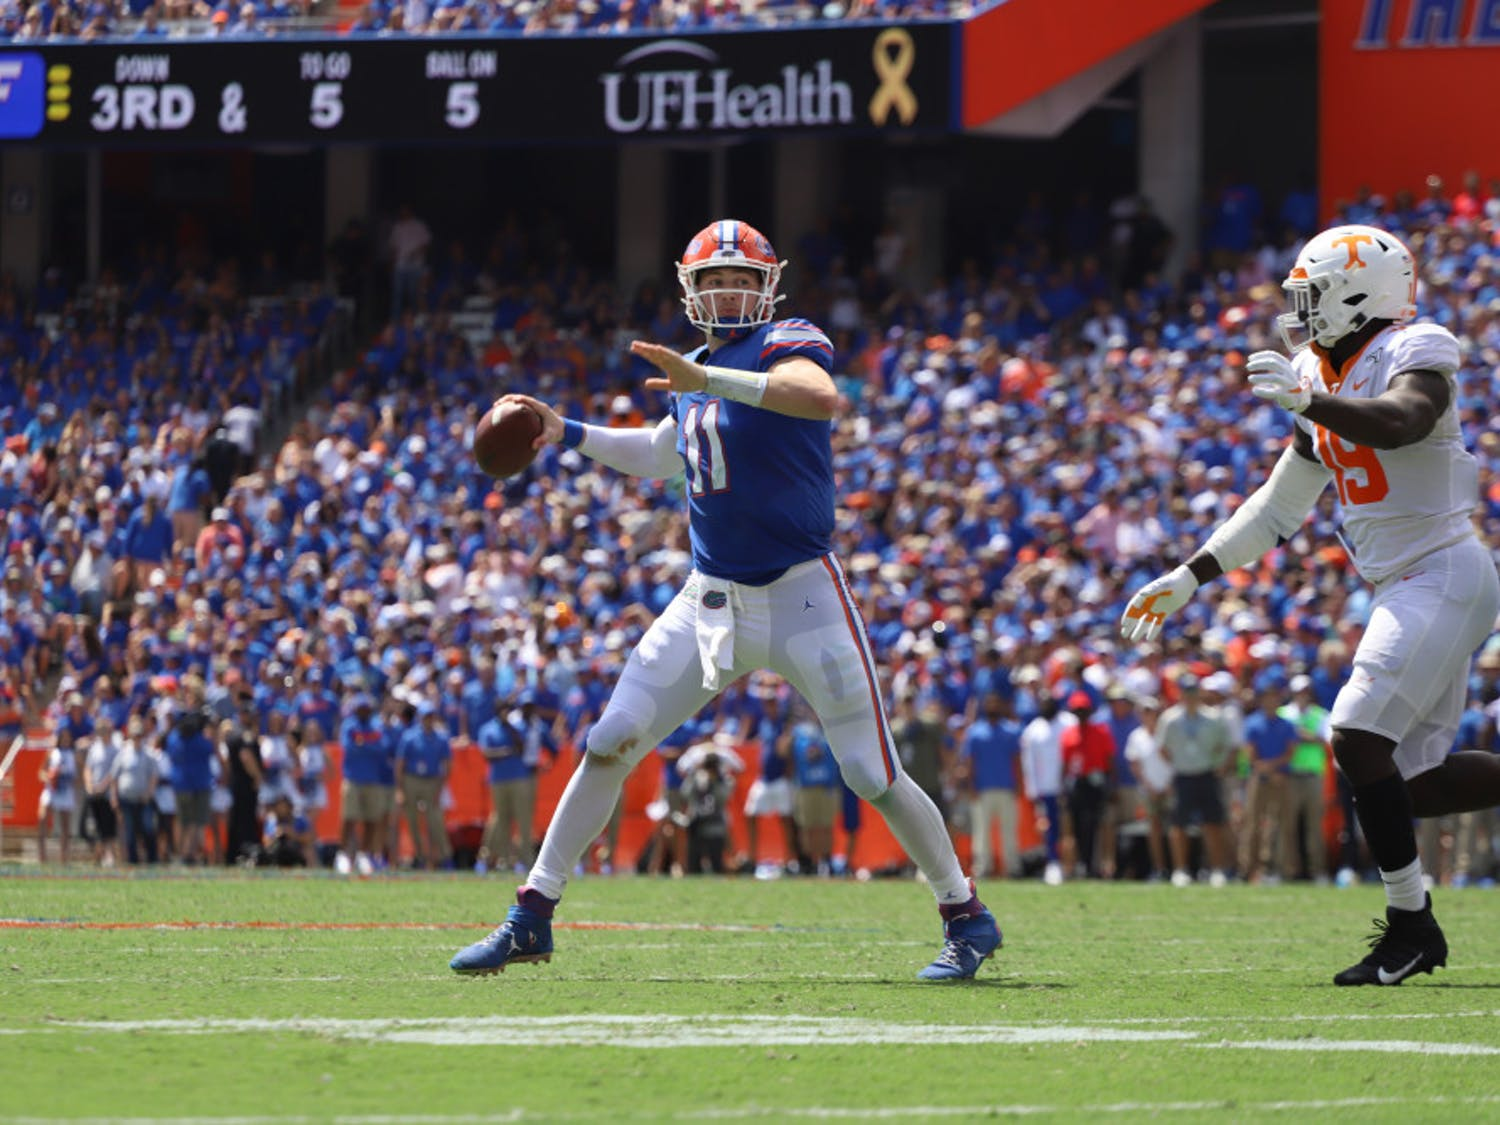 Florida quarterback Kyle Trask drops back in the Gators' home game versus Tennessee last season. In 2020, Trask has completed 71.9% of his passes, thrown 14 touchdowns to just one interception and is averaging 9.7 yards per attempt.